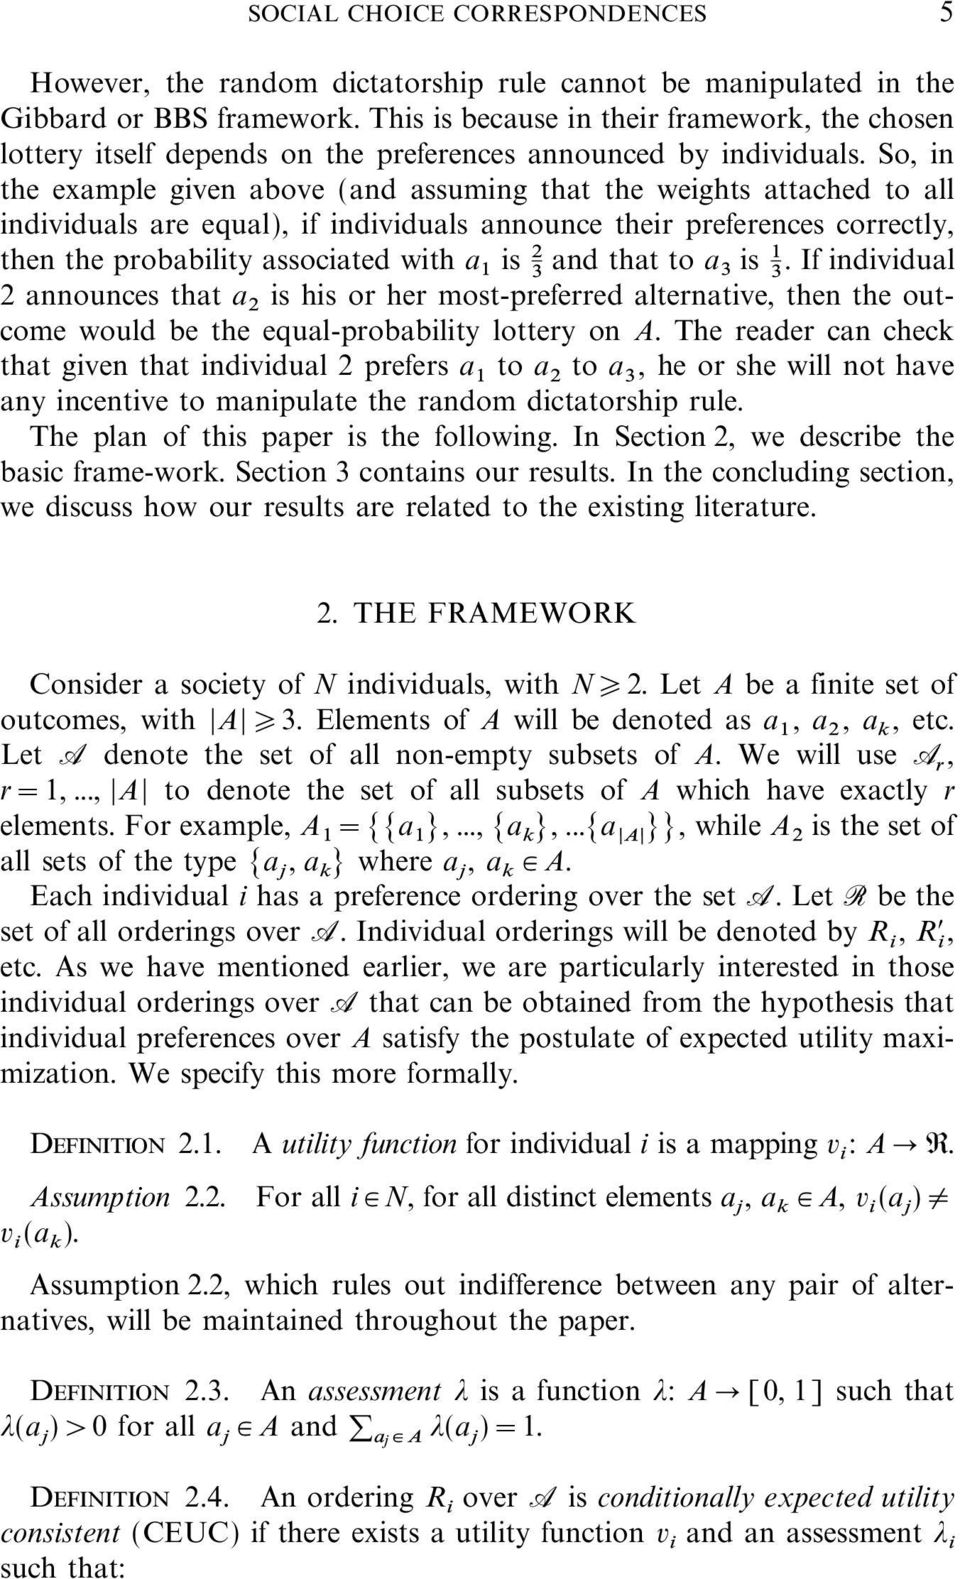 So, in the example given above (and assuming that the weights attached to all individuals are equal), if individuals announce their preferences correctly, then the probability associated with a 1 is